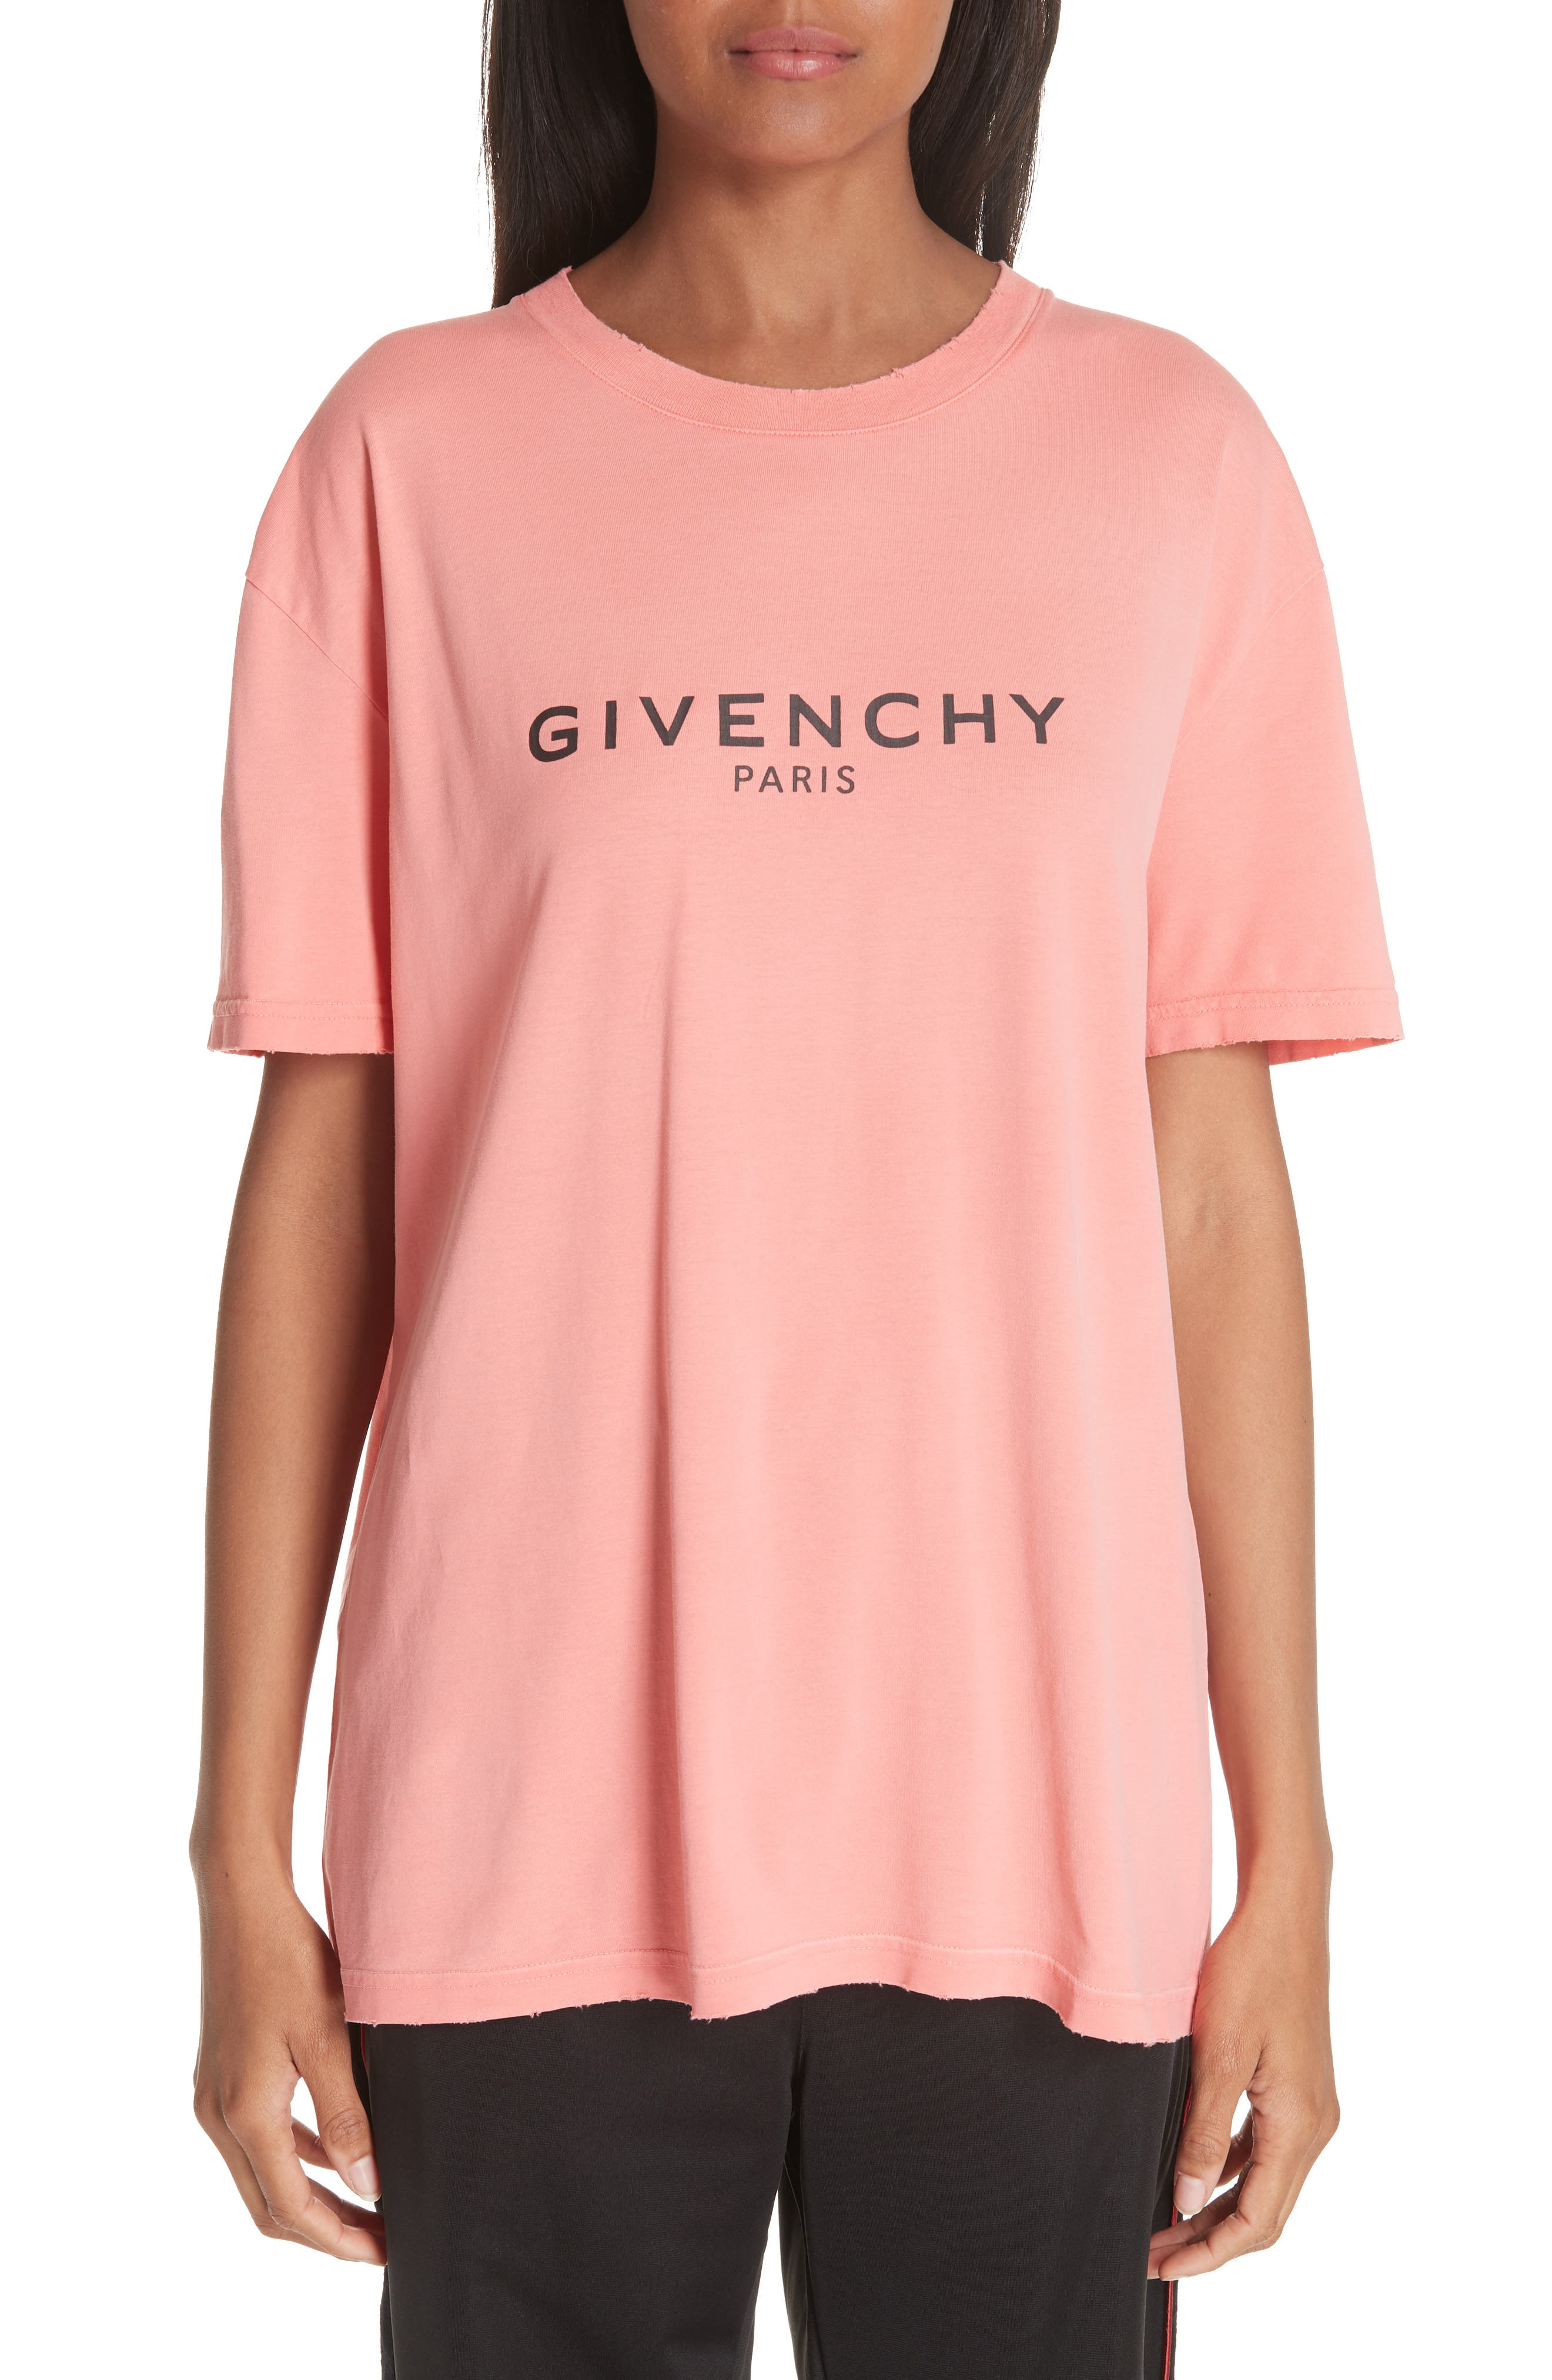 GIVENCHY Distressed Logo Tee, Main, color, CORAL